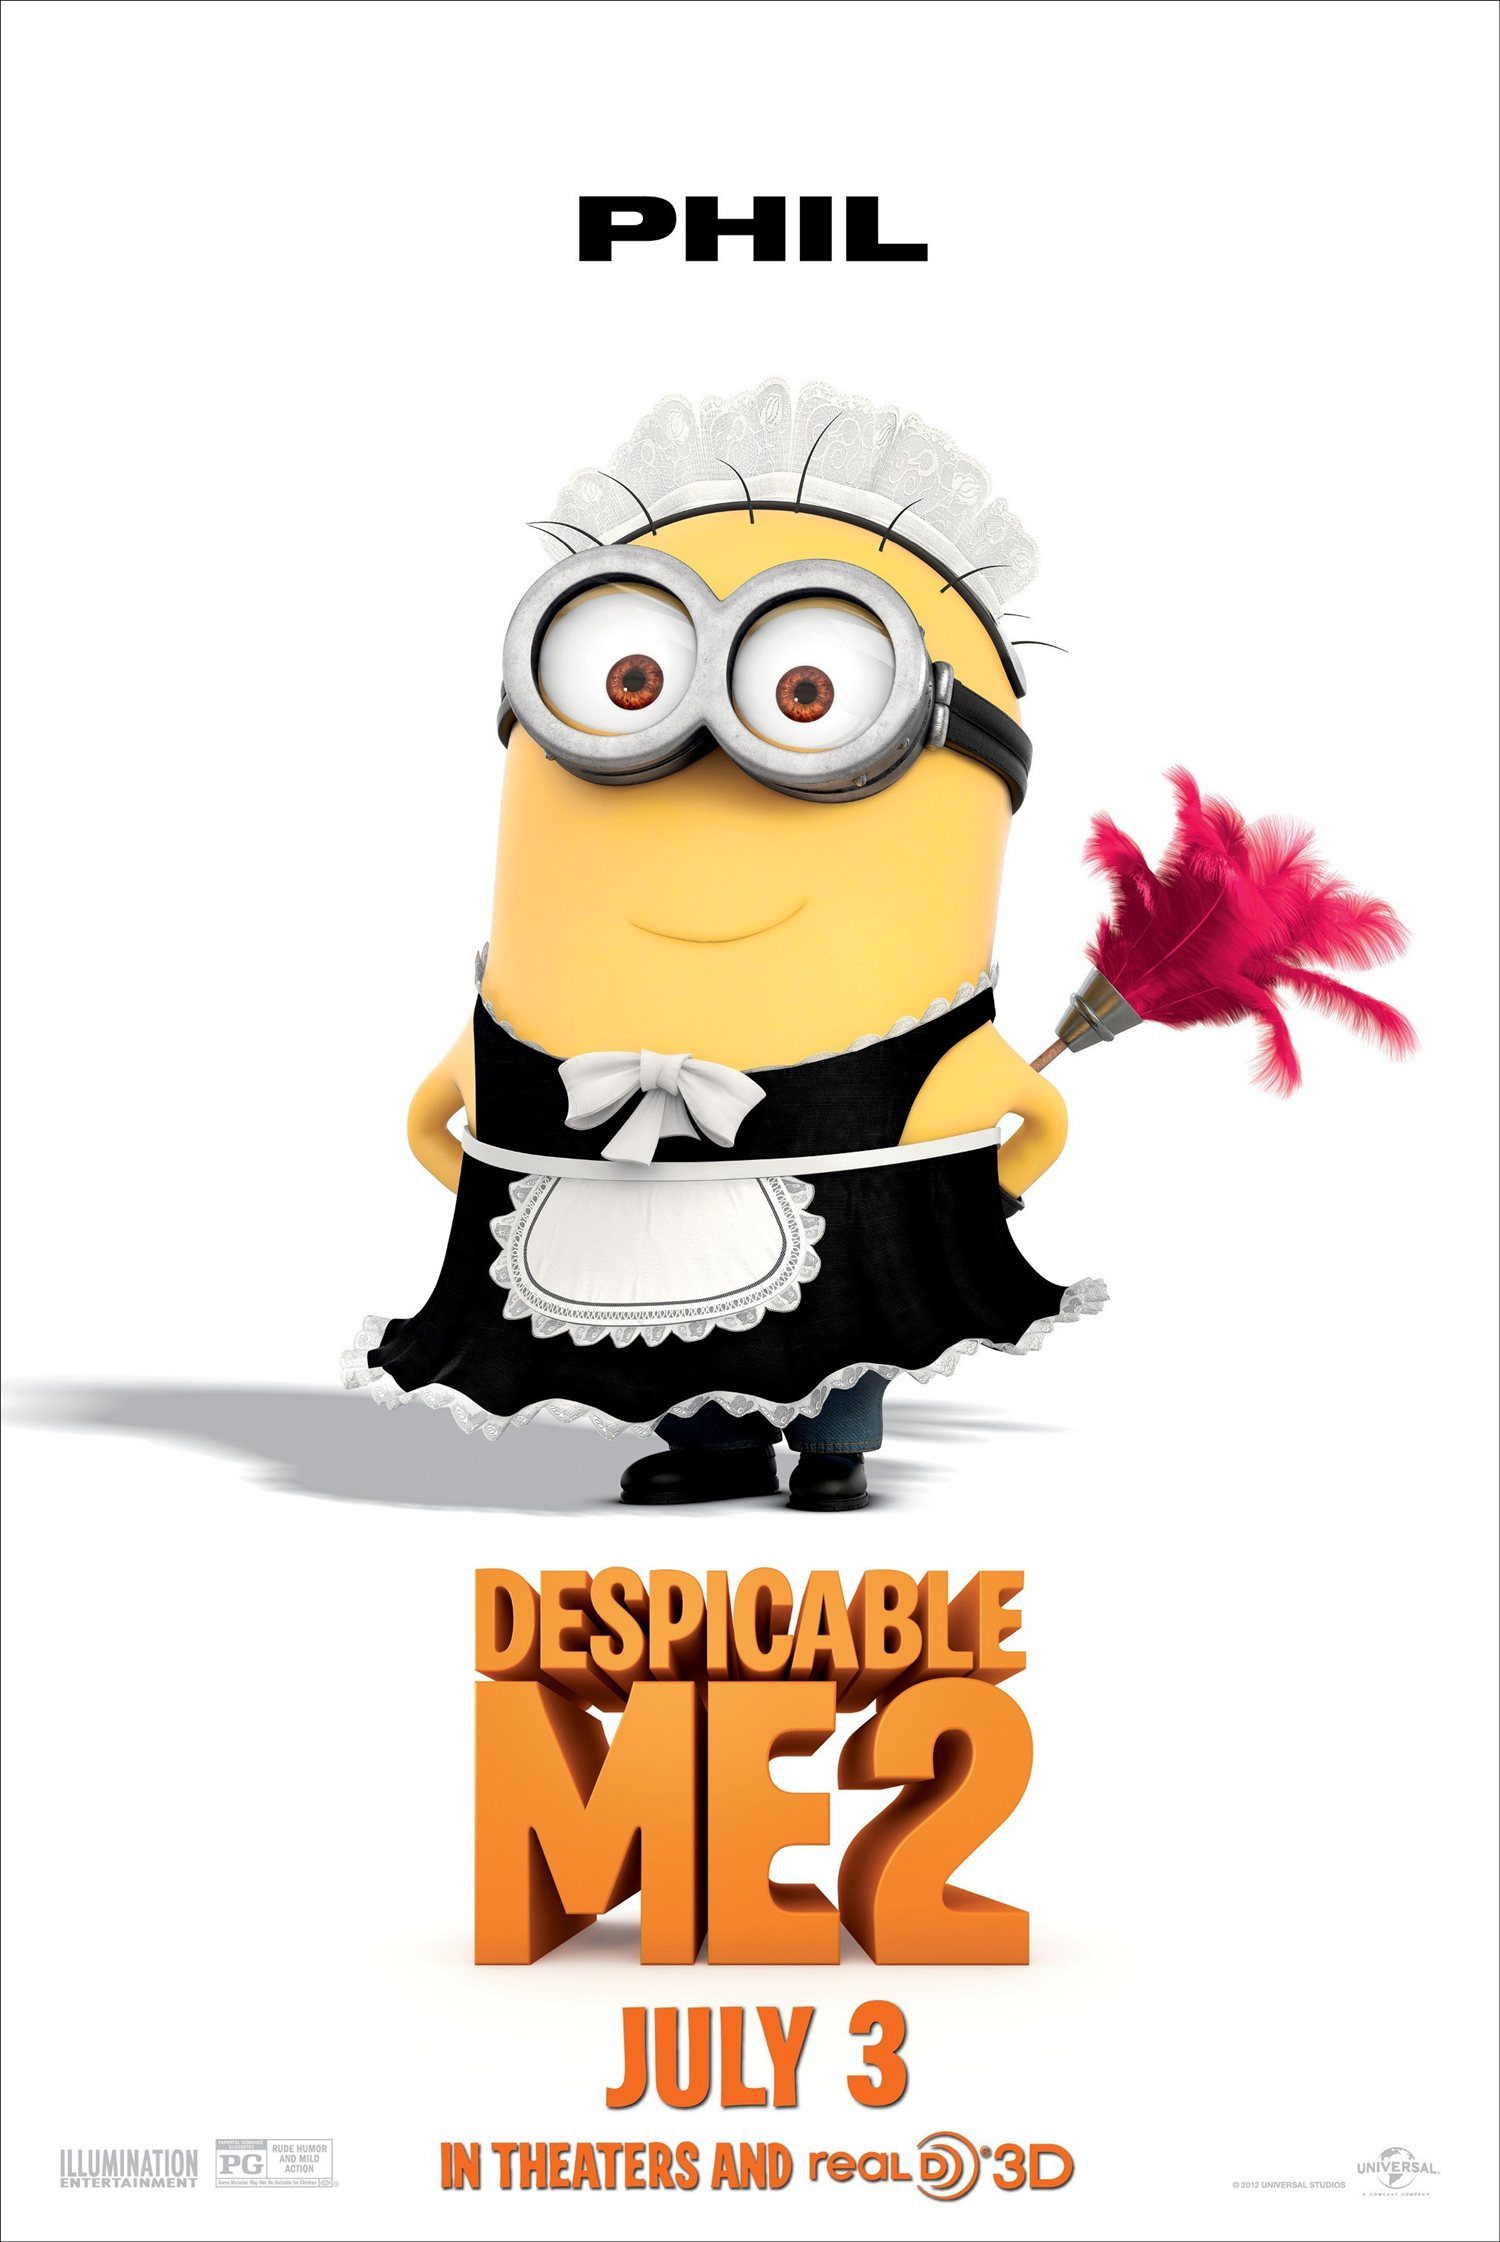 Attractive DESPICABLE ME 2 Phil The Minion Poster